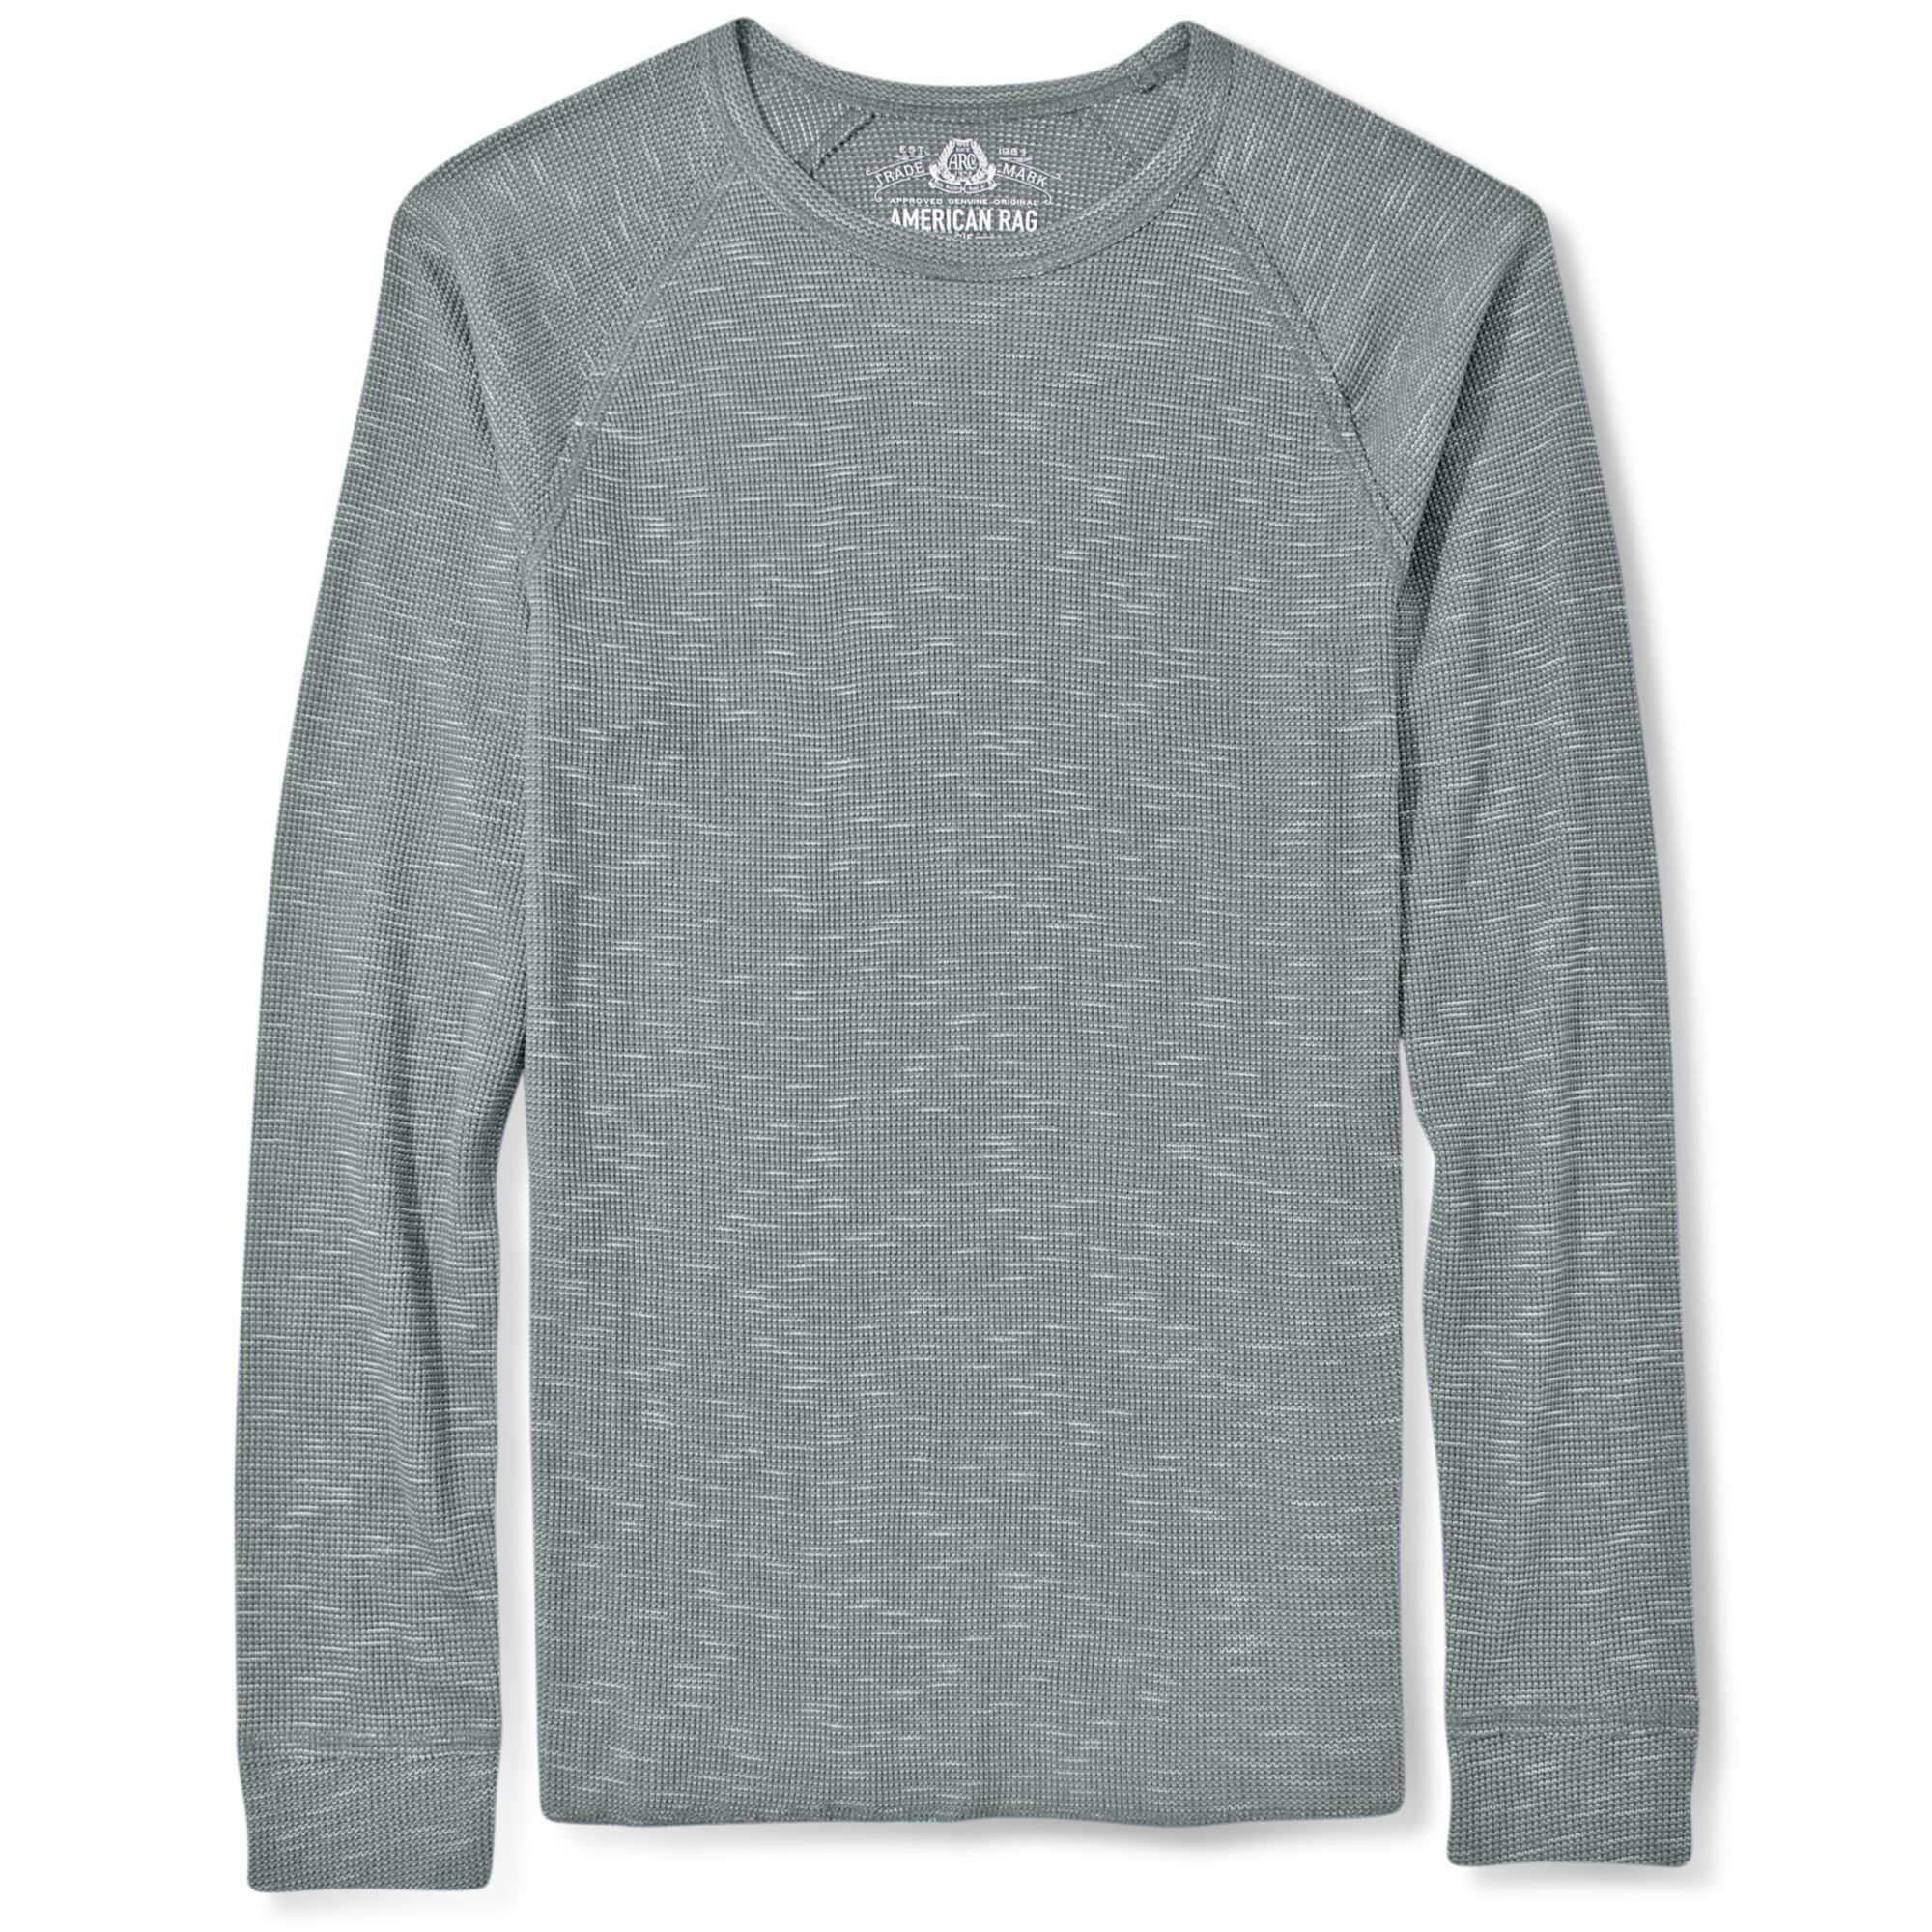 Lyst American Rag Crew Neck Slub Long Sleeve Thermal: thermal t shirt long sleeve